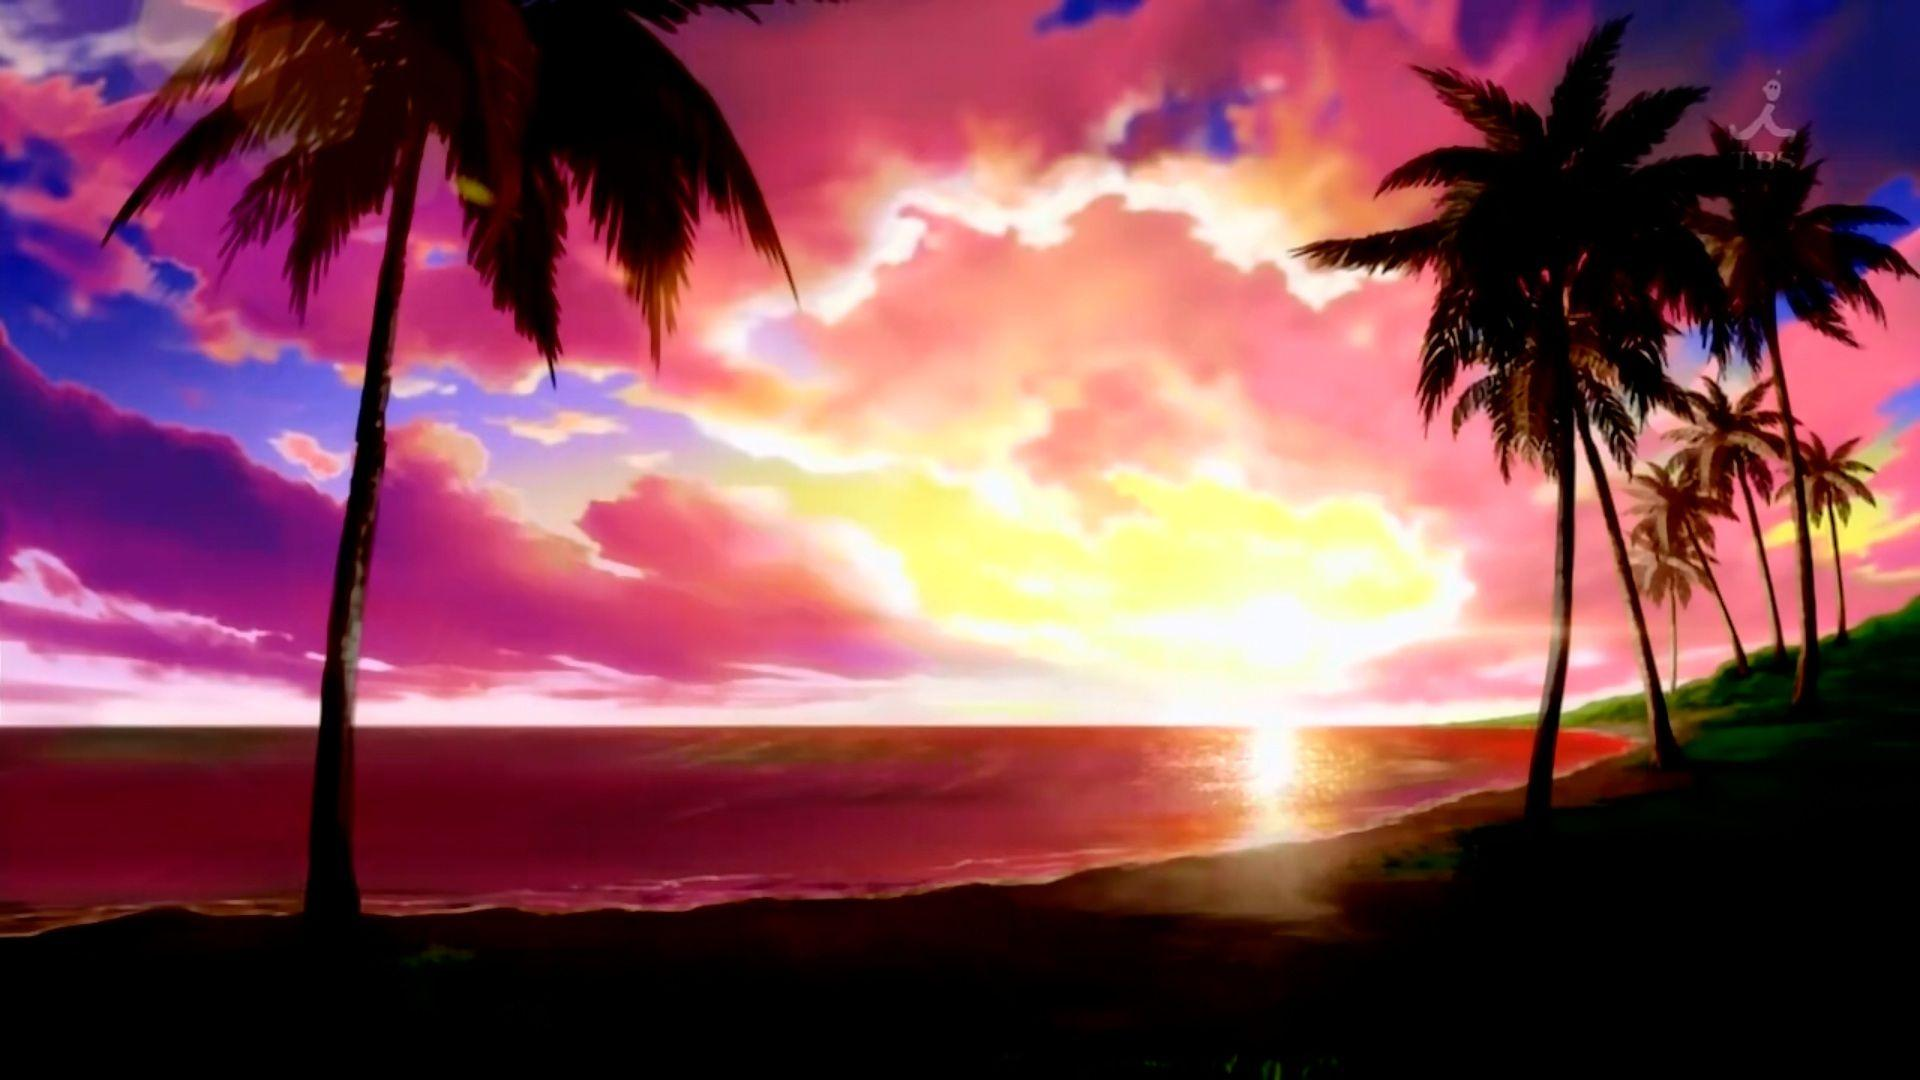 Anime Scenery Wallpapers - Wallpaper Cave